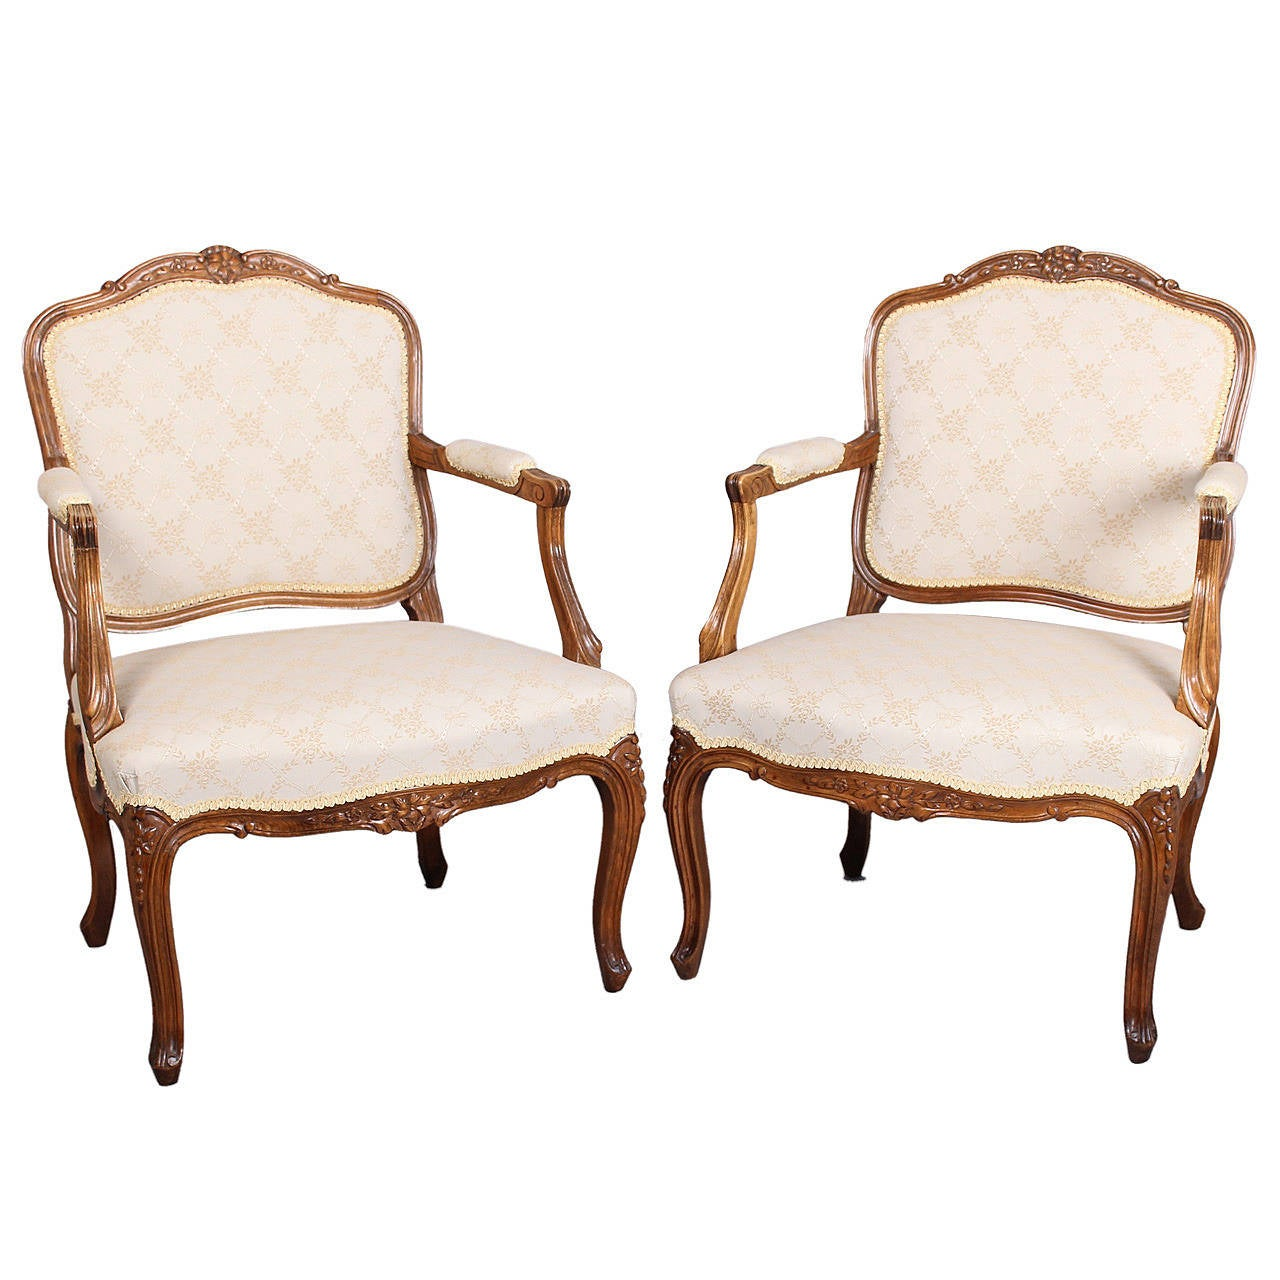 Danish Furniture St Louis Pair Of Danish Beech Fauteuils In The Louis Xv Manner At